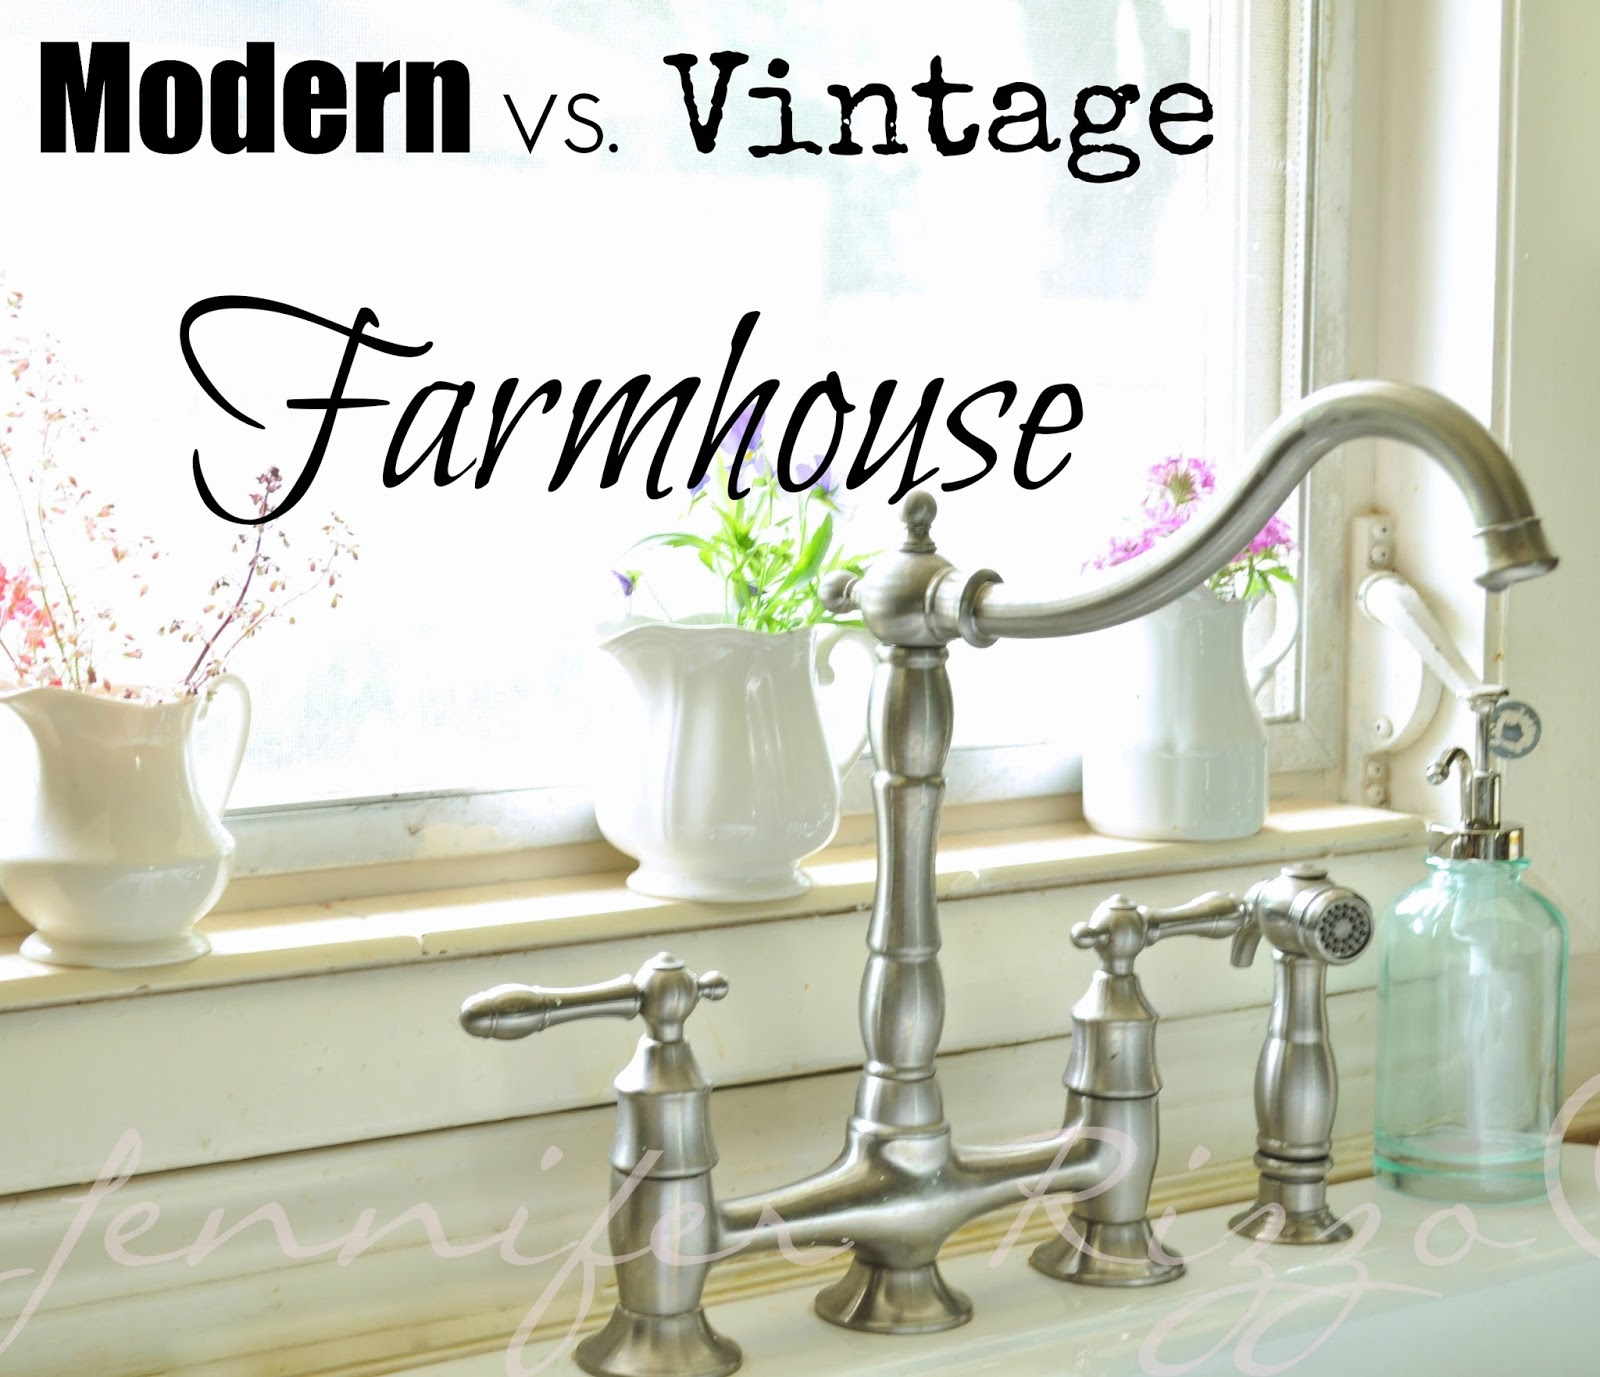 The difference between Modern vs. Vintage Farmhouse... - Jennifer Rizzo